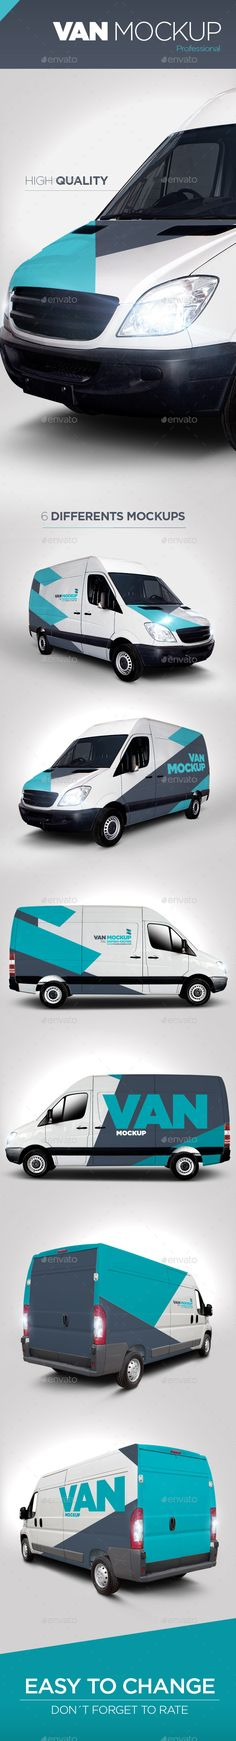 Van Mock Up - Product Mock-Ups Graphics